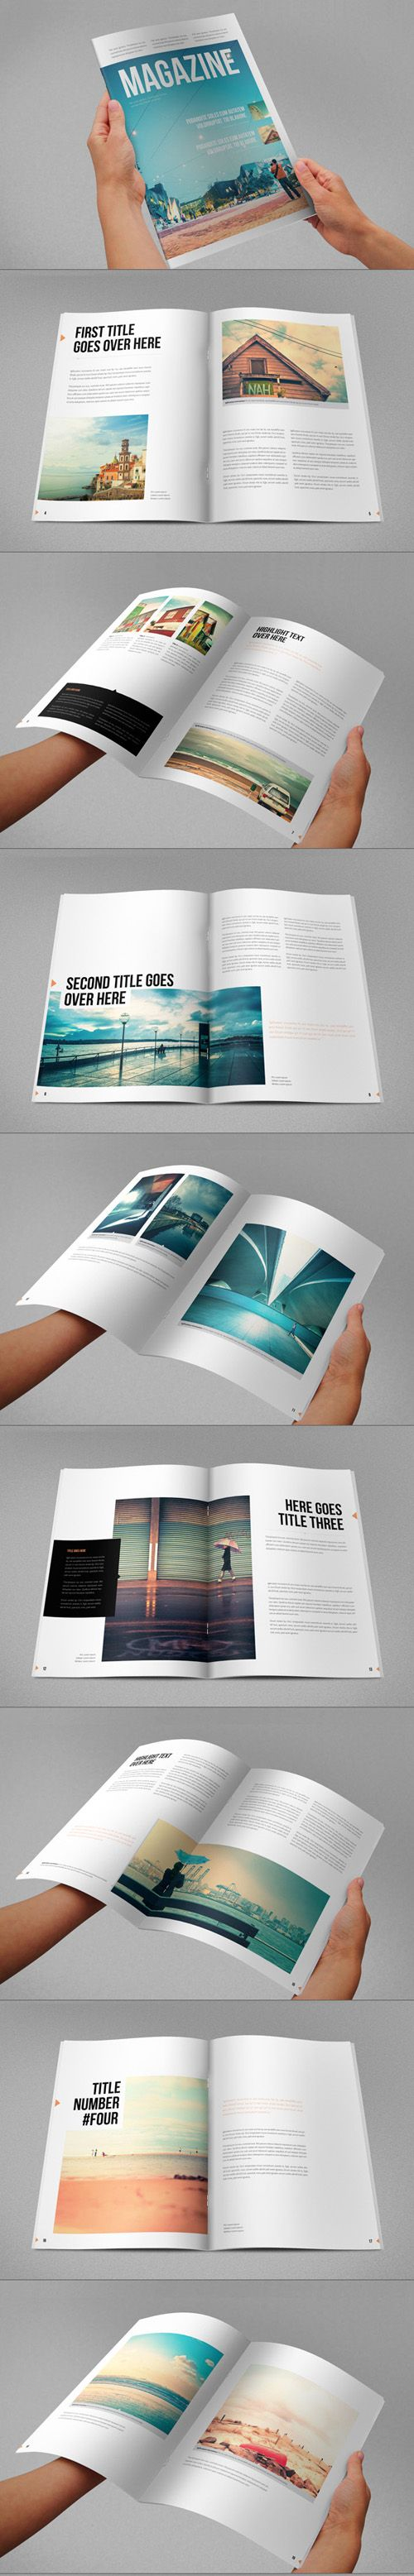 15 creative print ready business brochure designs